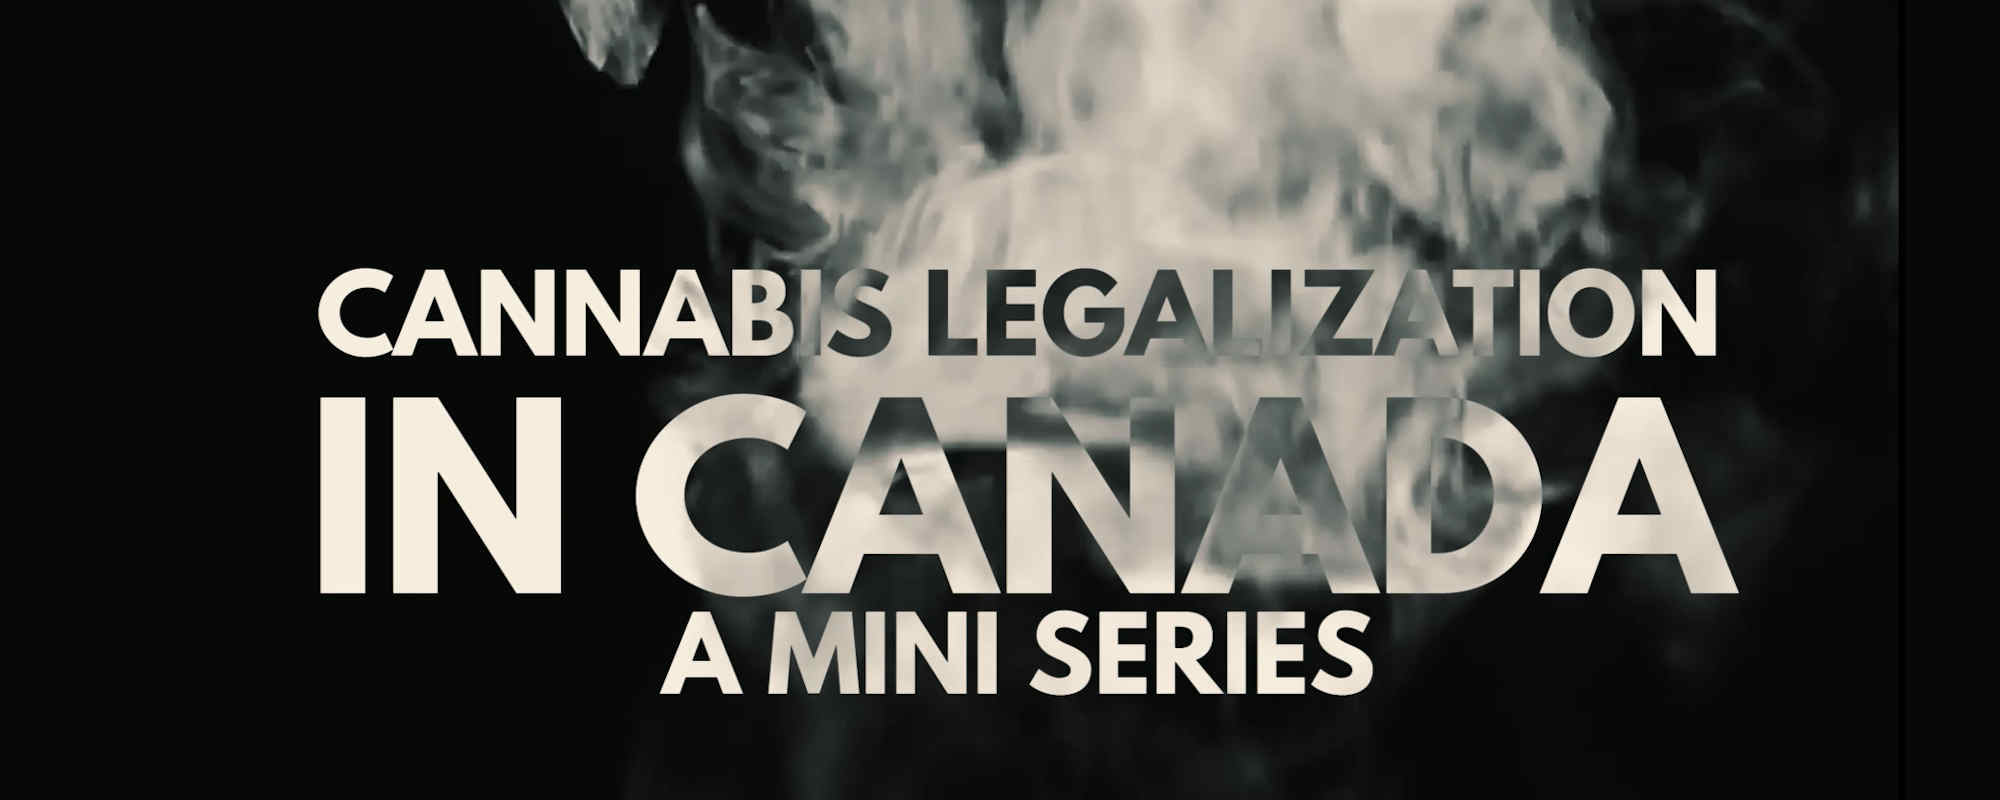 Cannabis legalization in Canada image